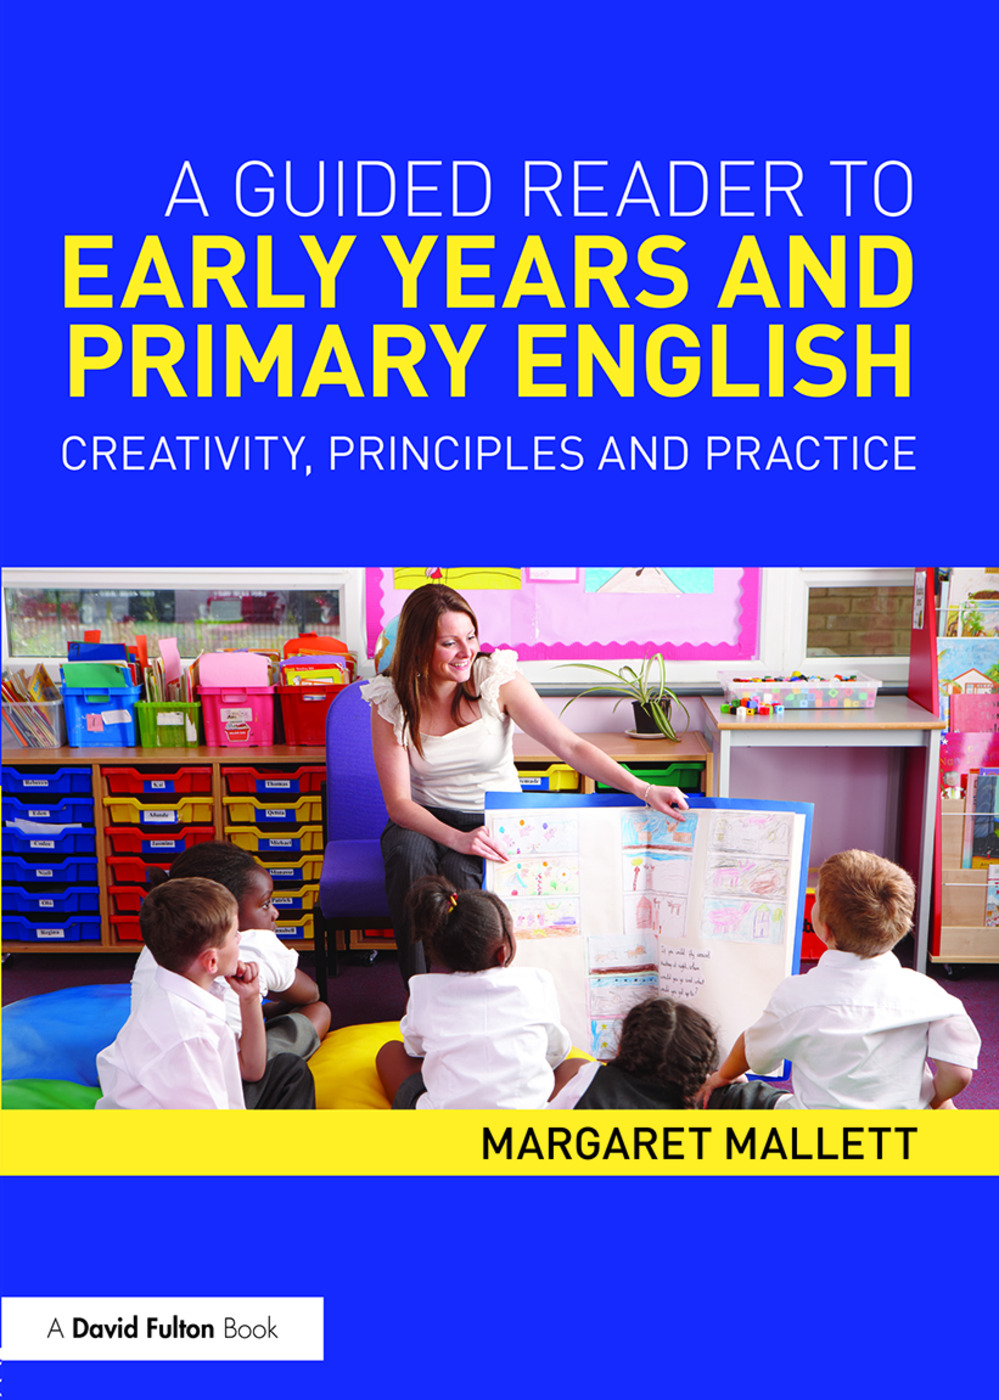 A Guided Reader to Early Years and Primary English